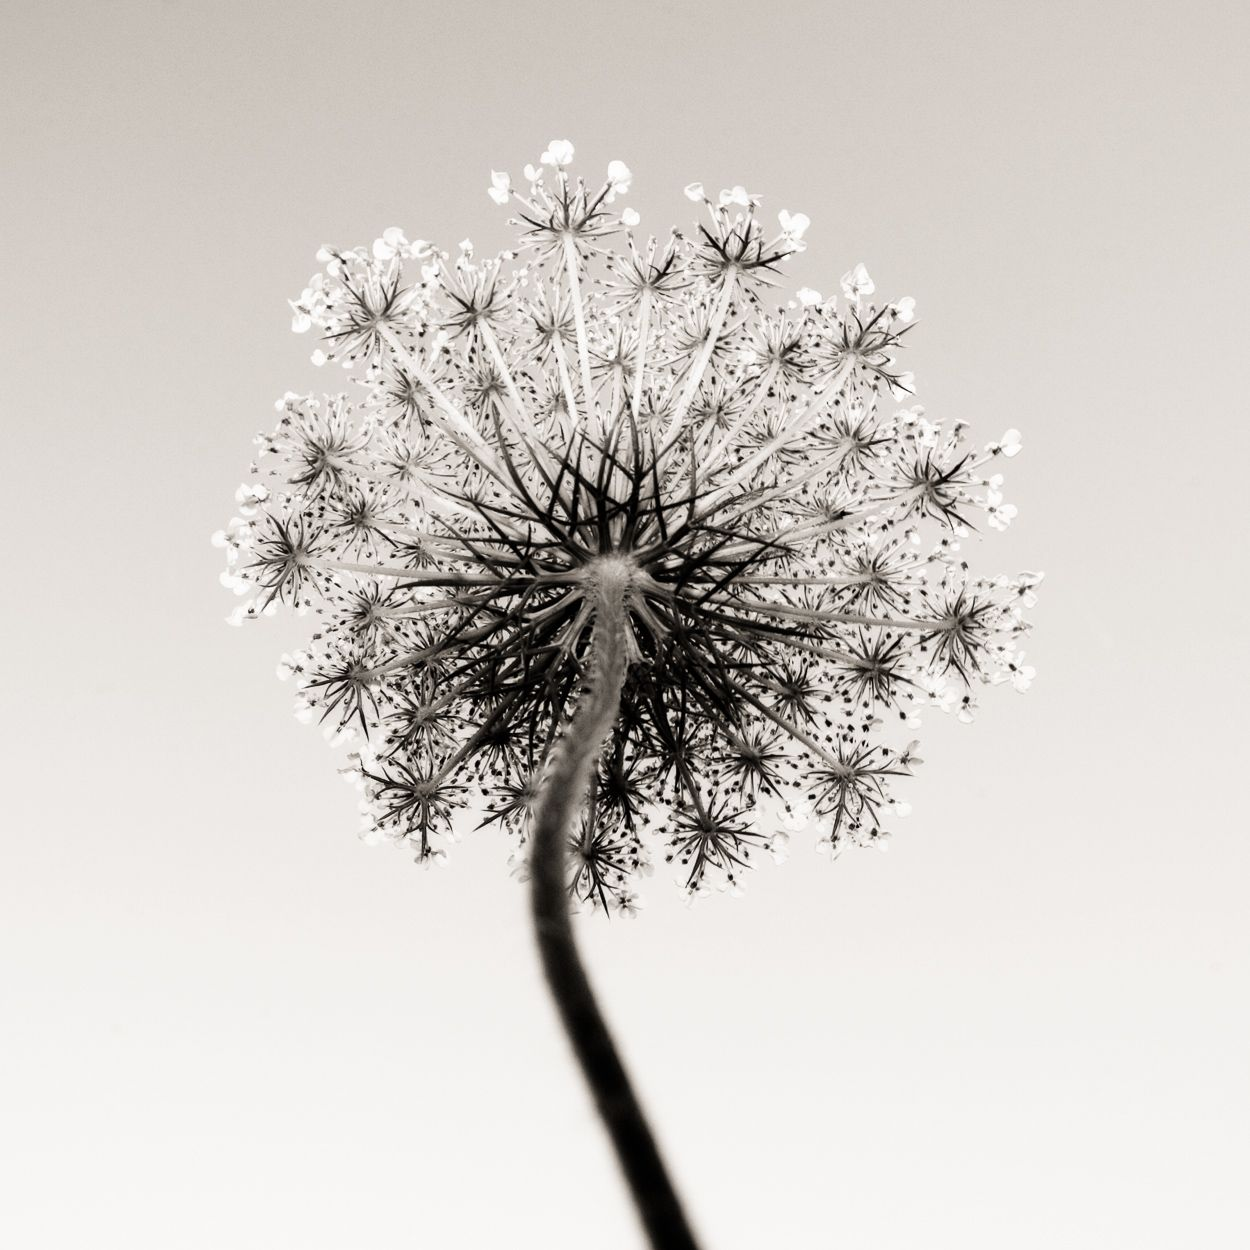 Queen Anne's Lace (2007) by Jeffrey Conley